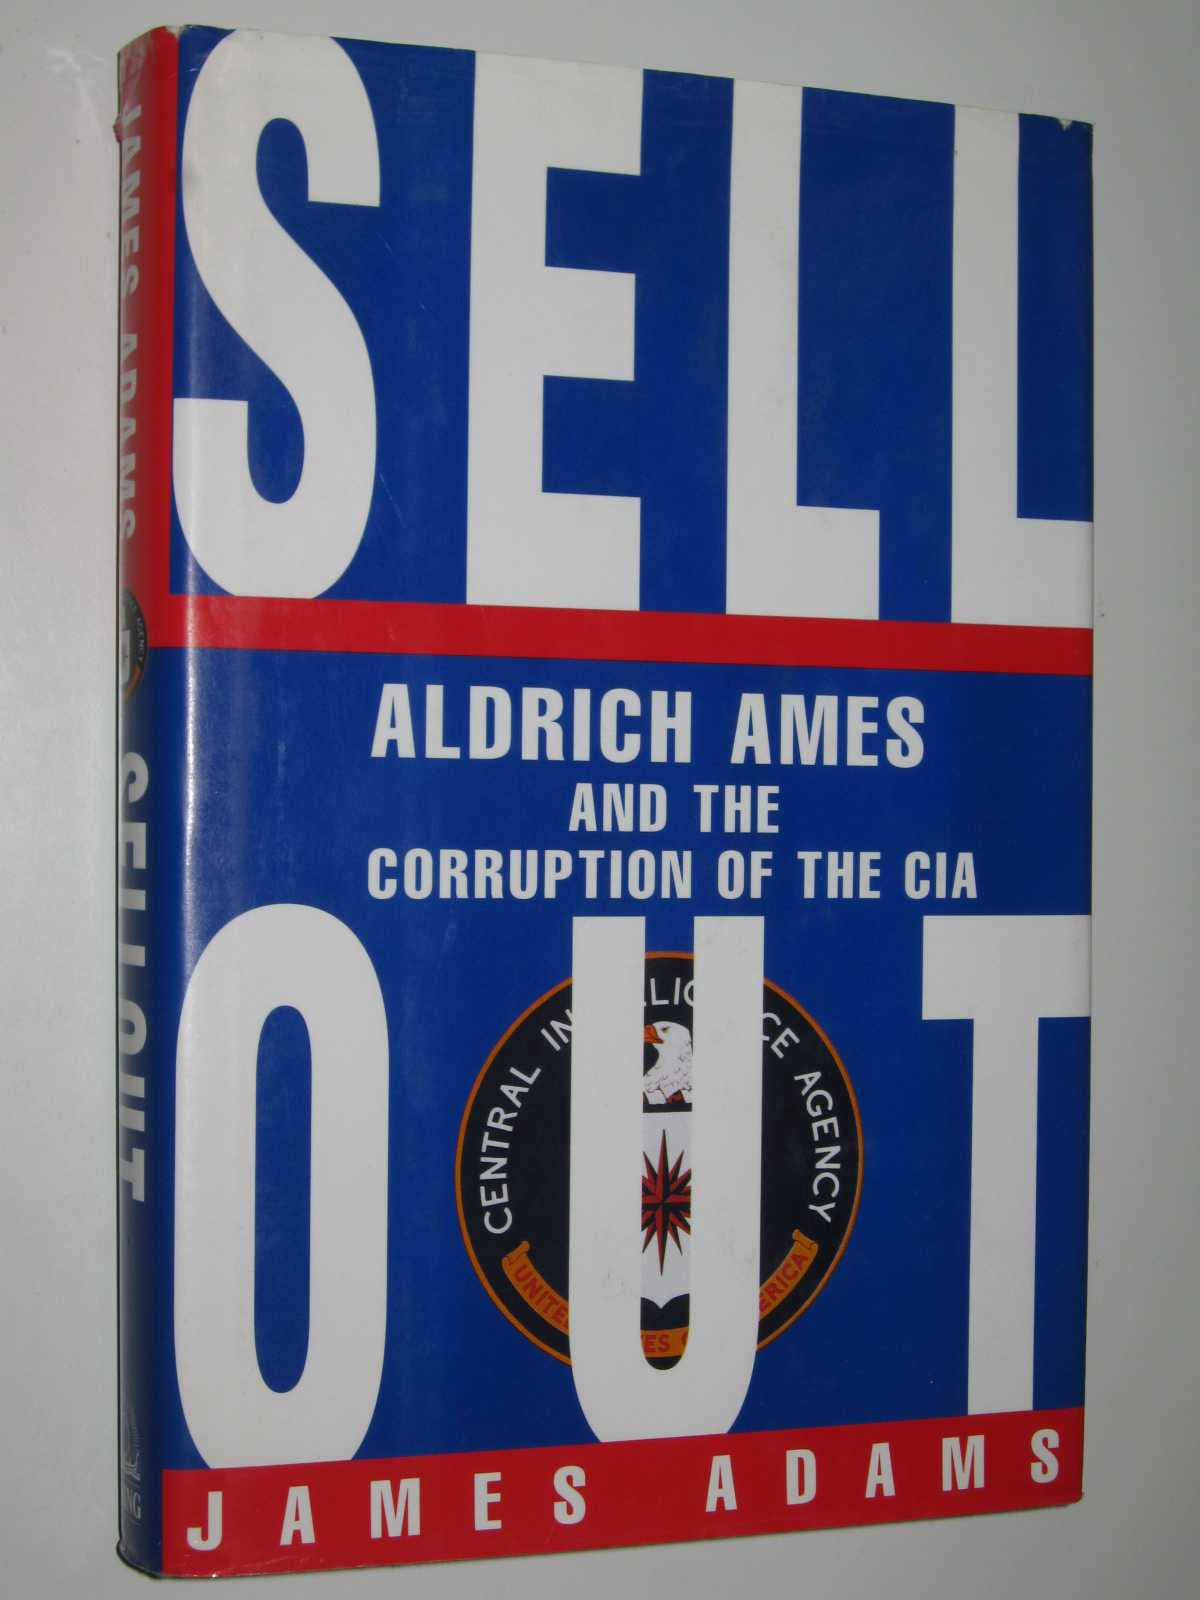 Sell Out : Aldrich Ames and the Corruption of the CIA, Adams, James